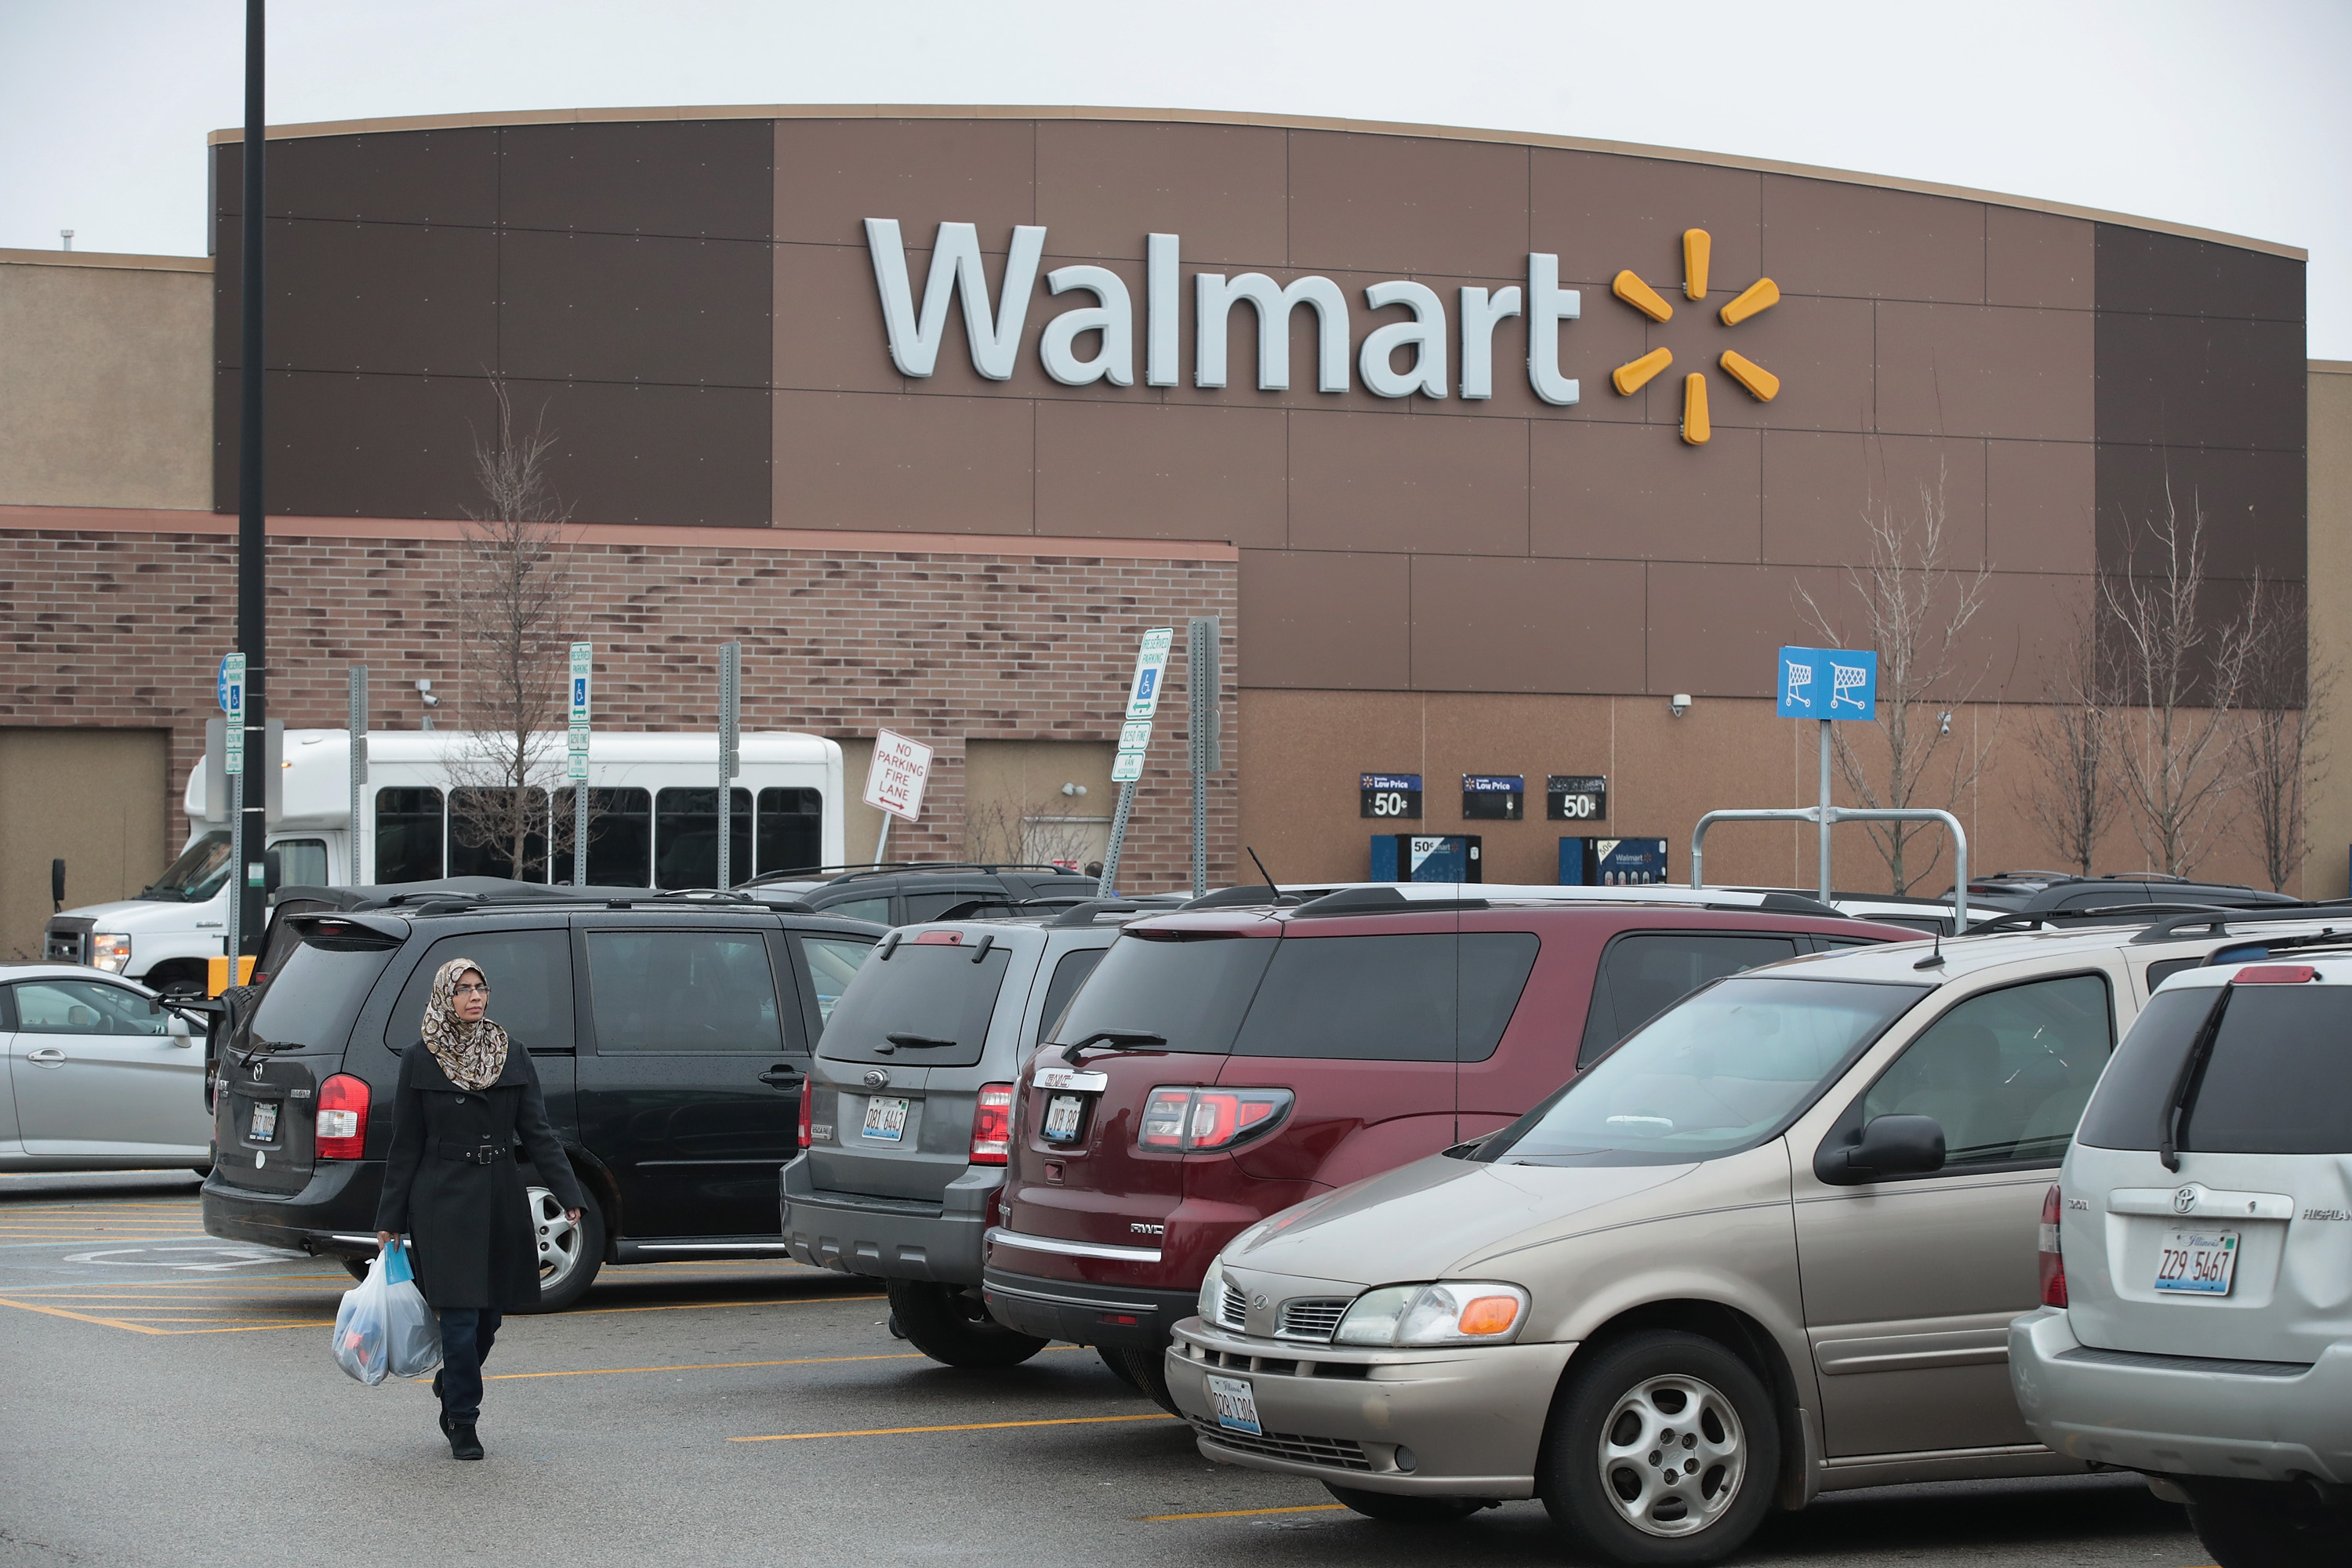 Wal-Mart Announces Plan To Create 10,000 Jobs In U.S. In 2017